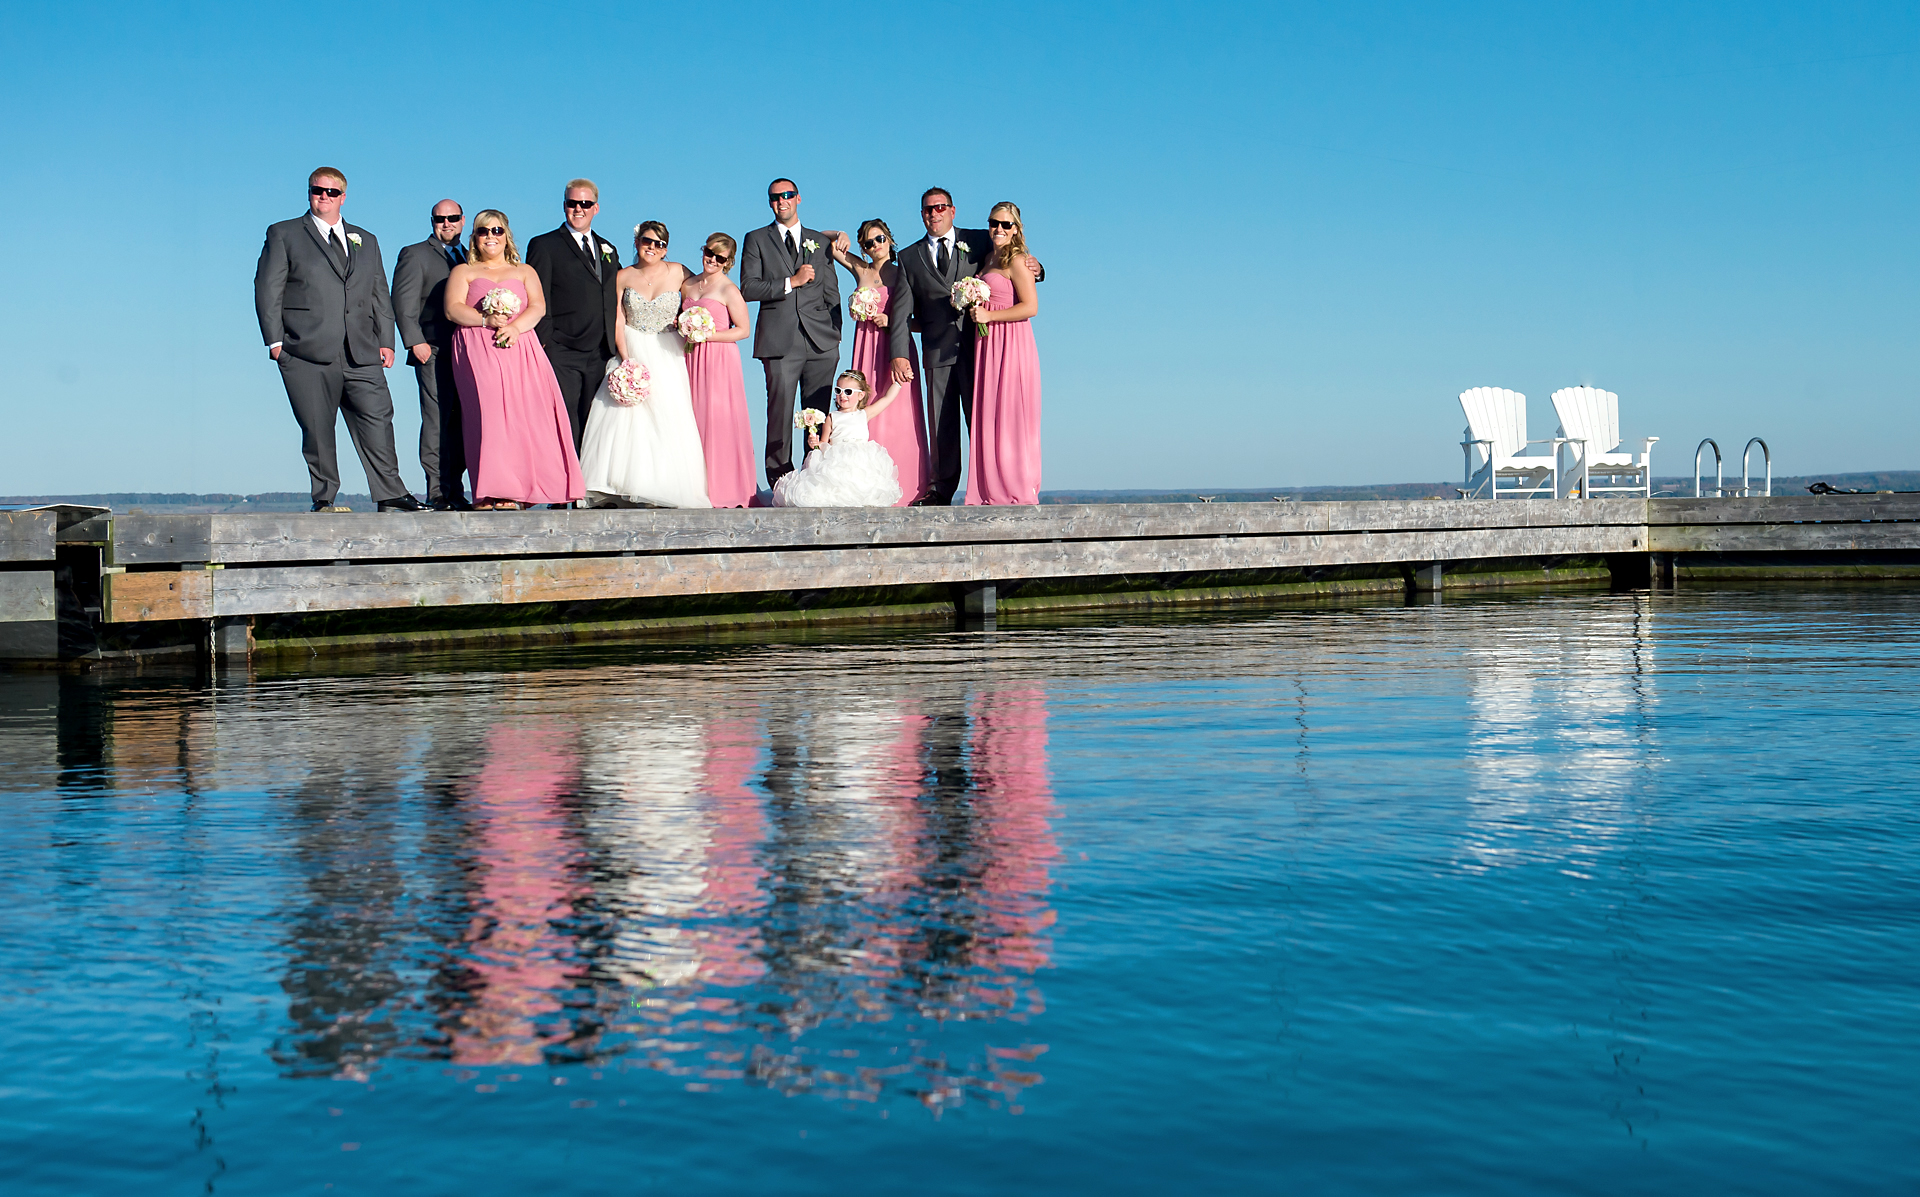 Wes & Mallory | Cobble Beach Wedding | Owen Sound Wedding Photography 22